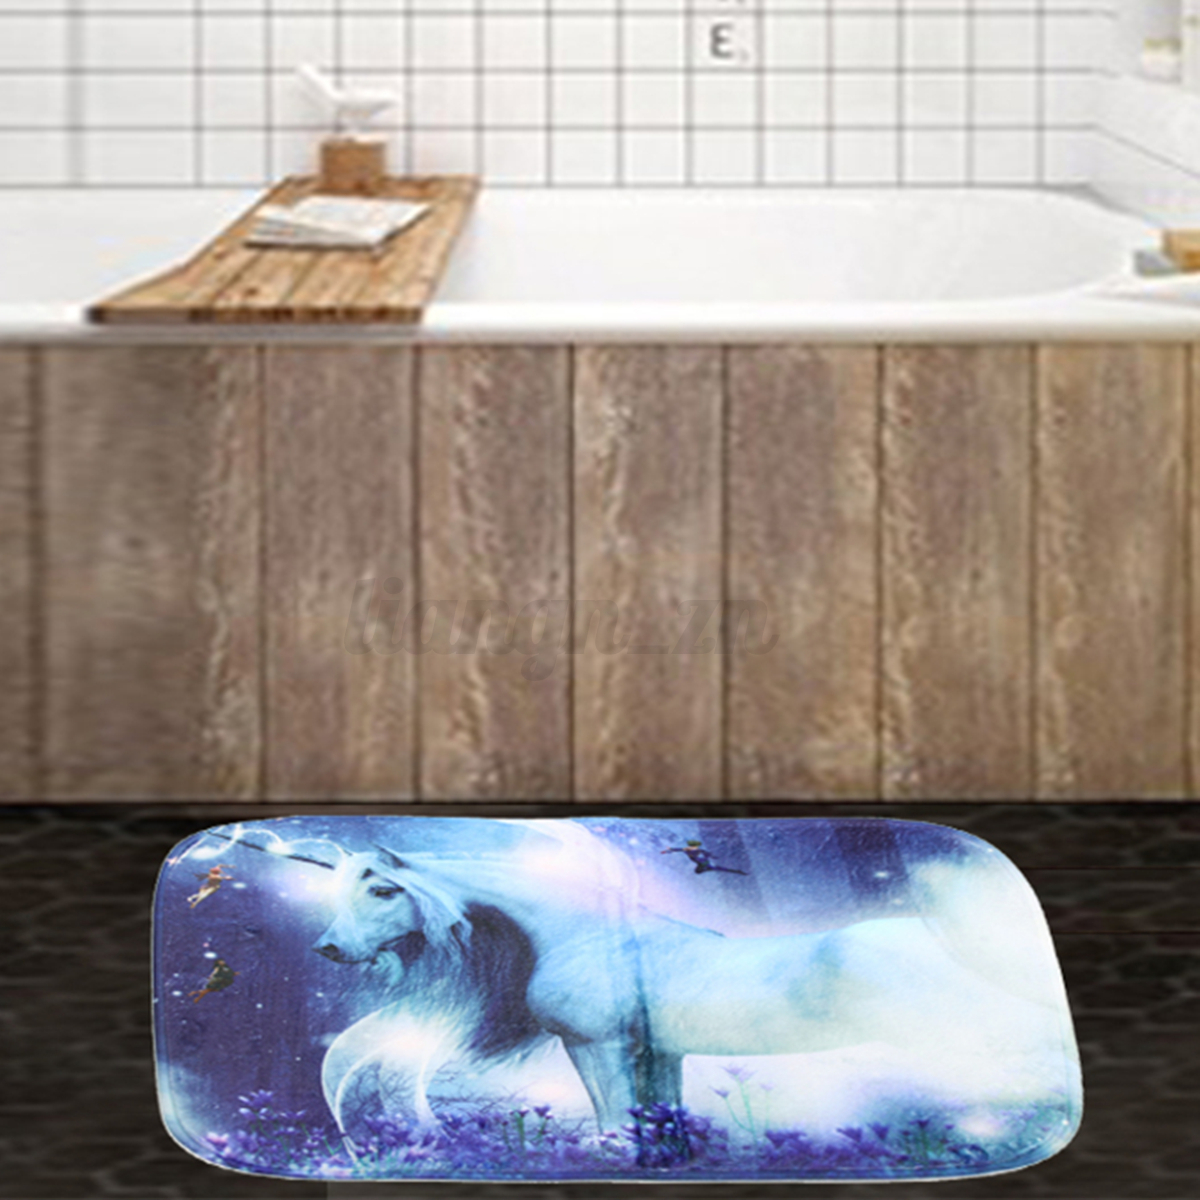 licorne rideau polyester douche panneau imperm able salle de bain 12 crochet mat ebay. Black Bedroom Furniture Sets. Home Design Ideas